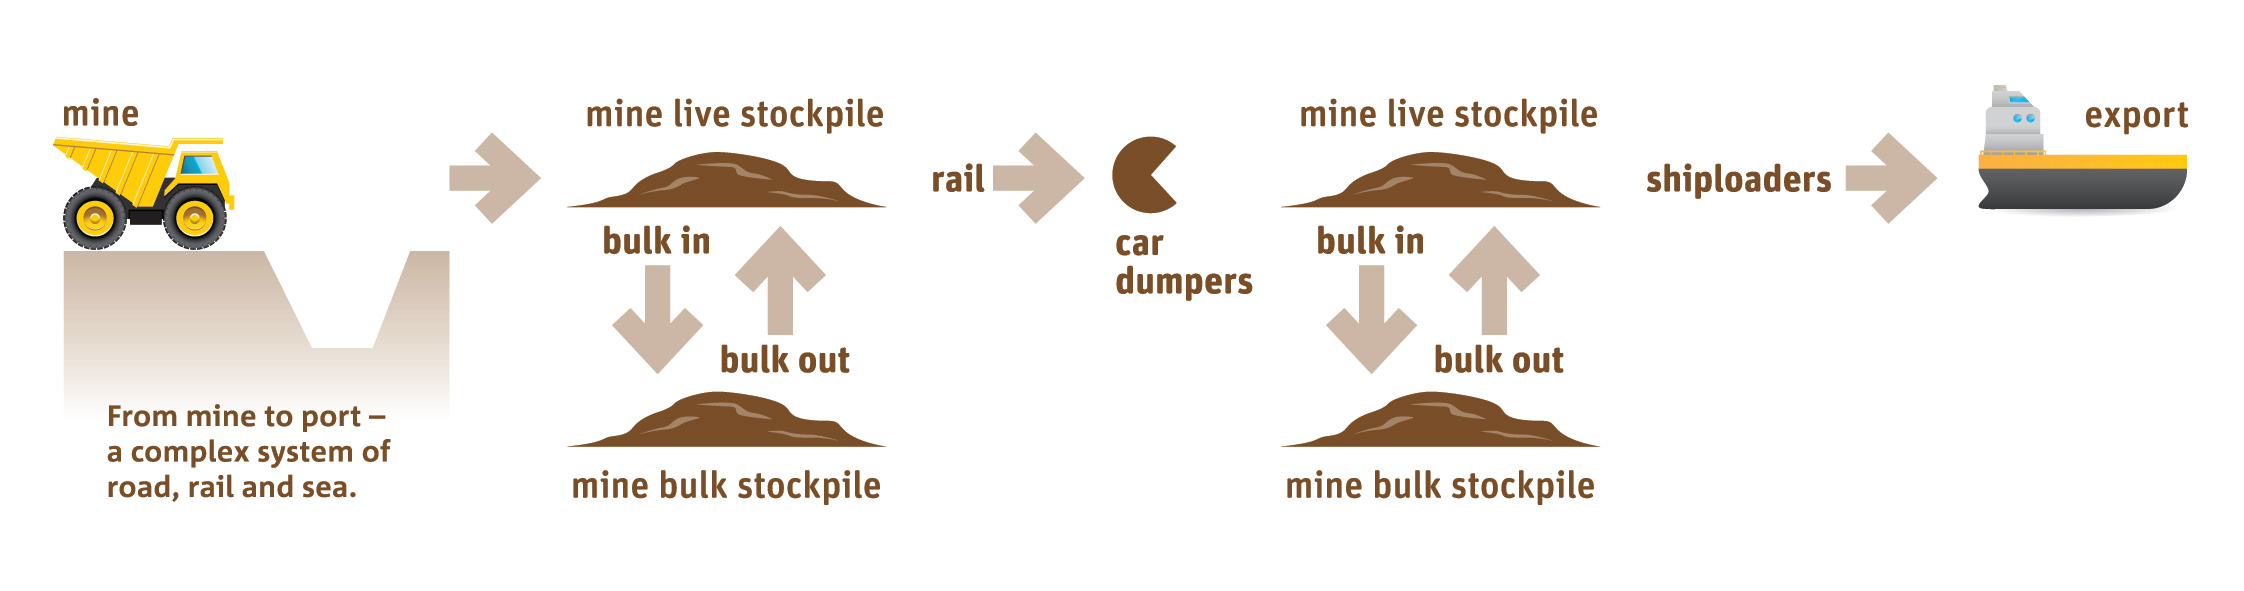 Diagram outlining the movement of iron ore from mine to port